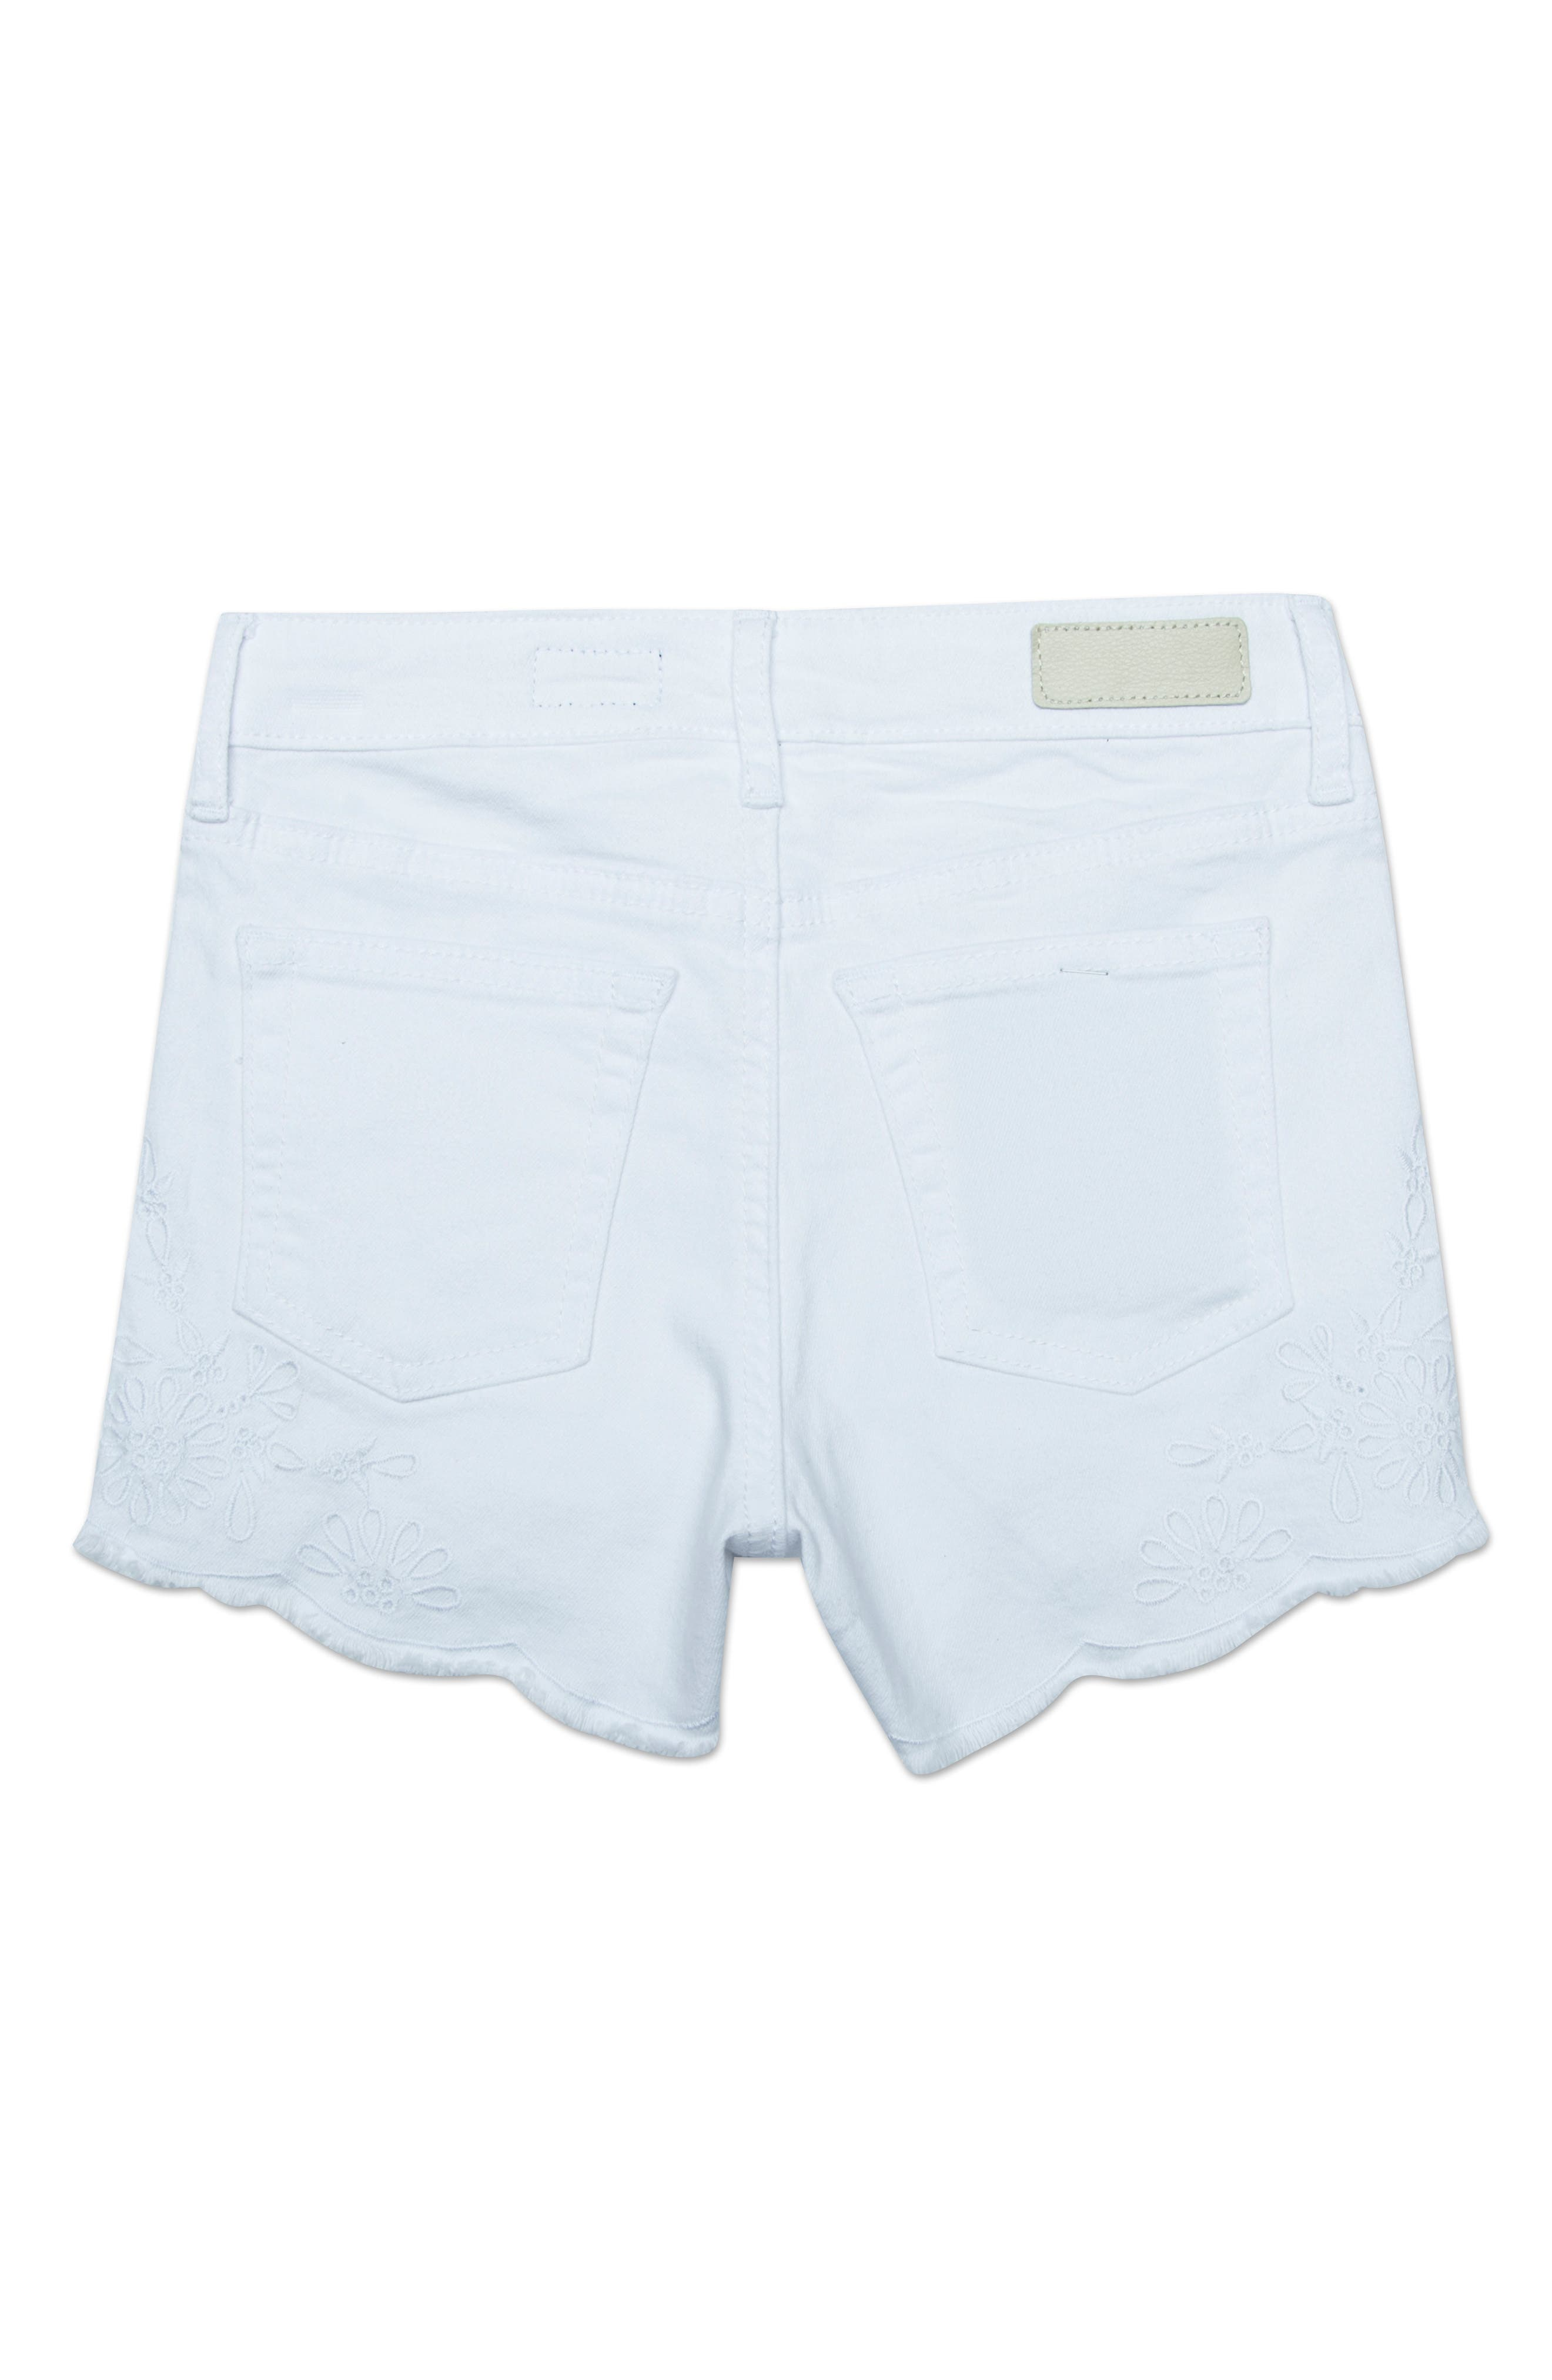 adriano goldschmeid kids The Brooklyn Scallop Denim Shorts,                             Alternate thumbnail 2, color,                             White/ Coconut